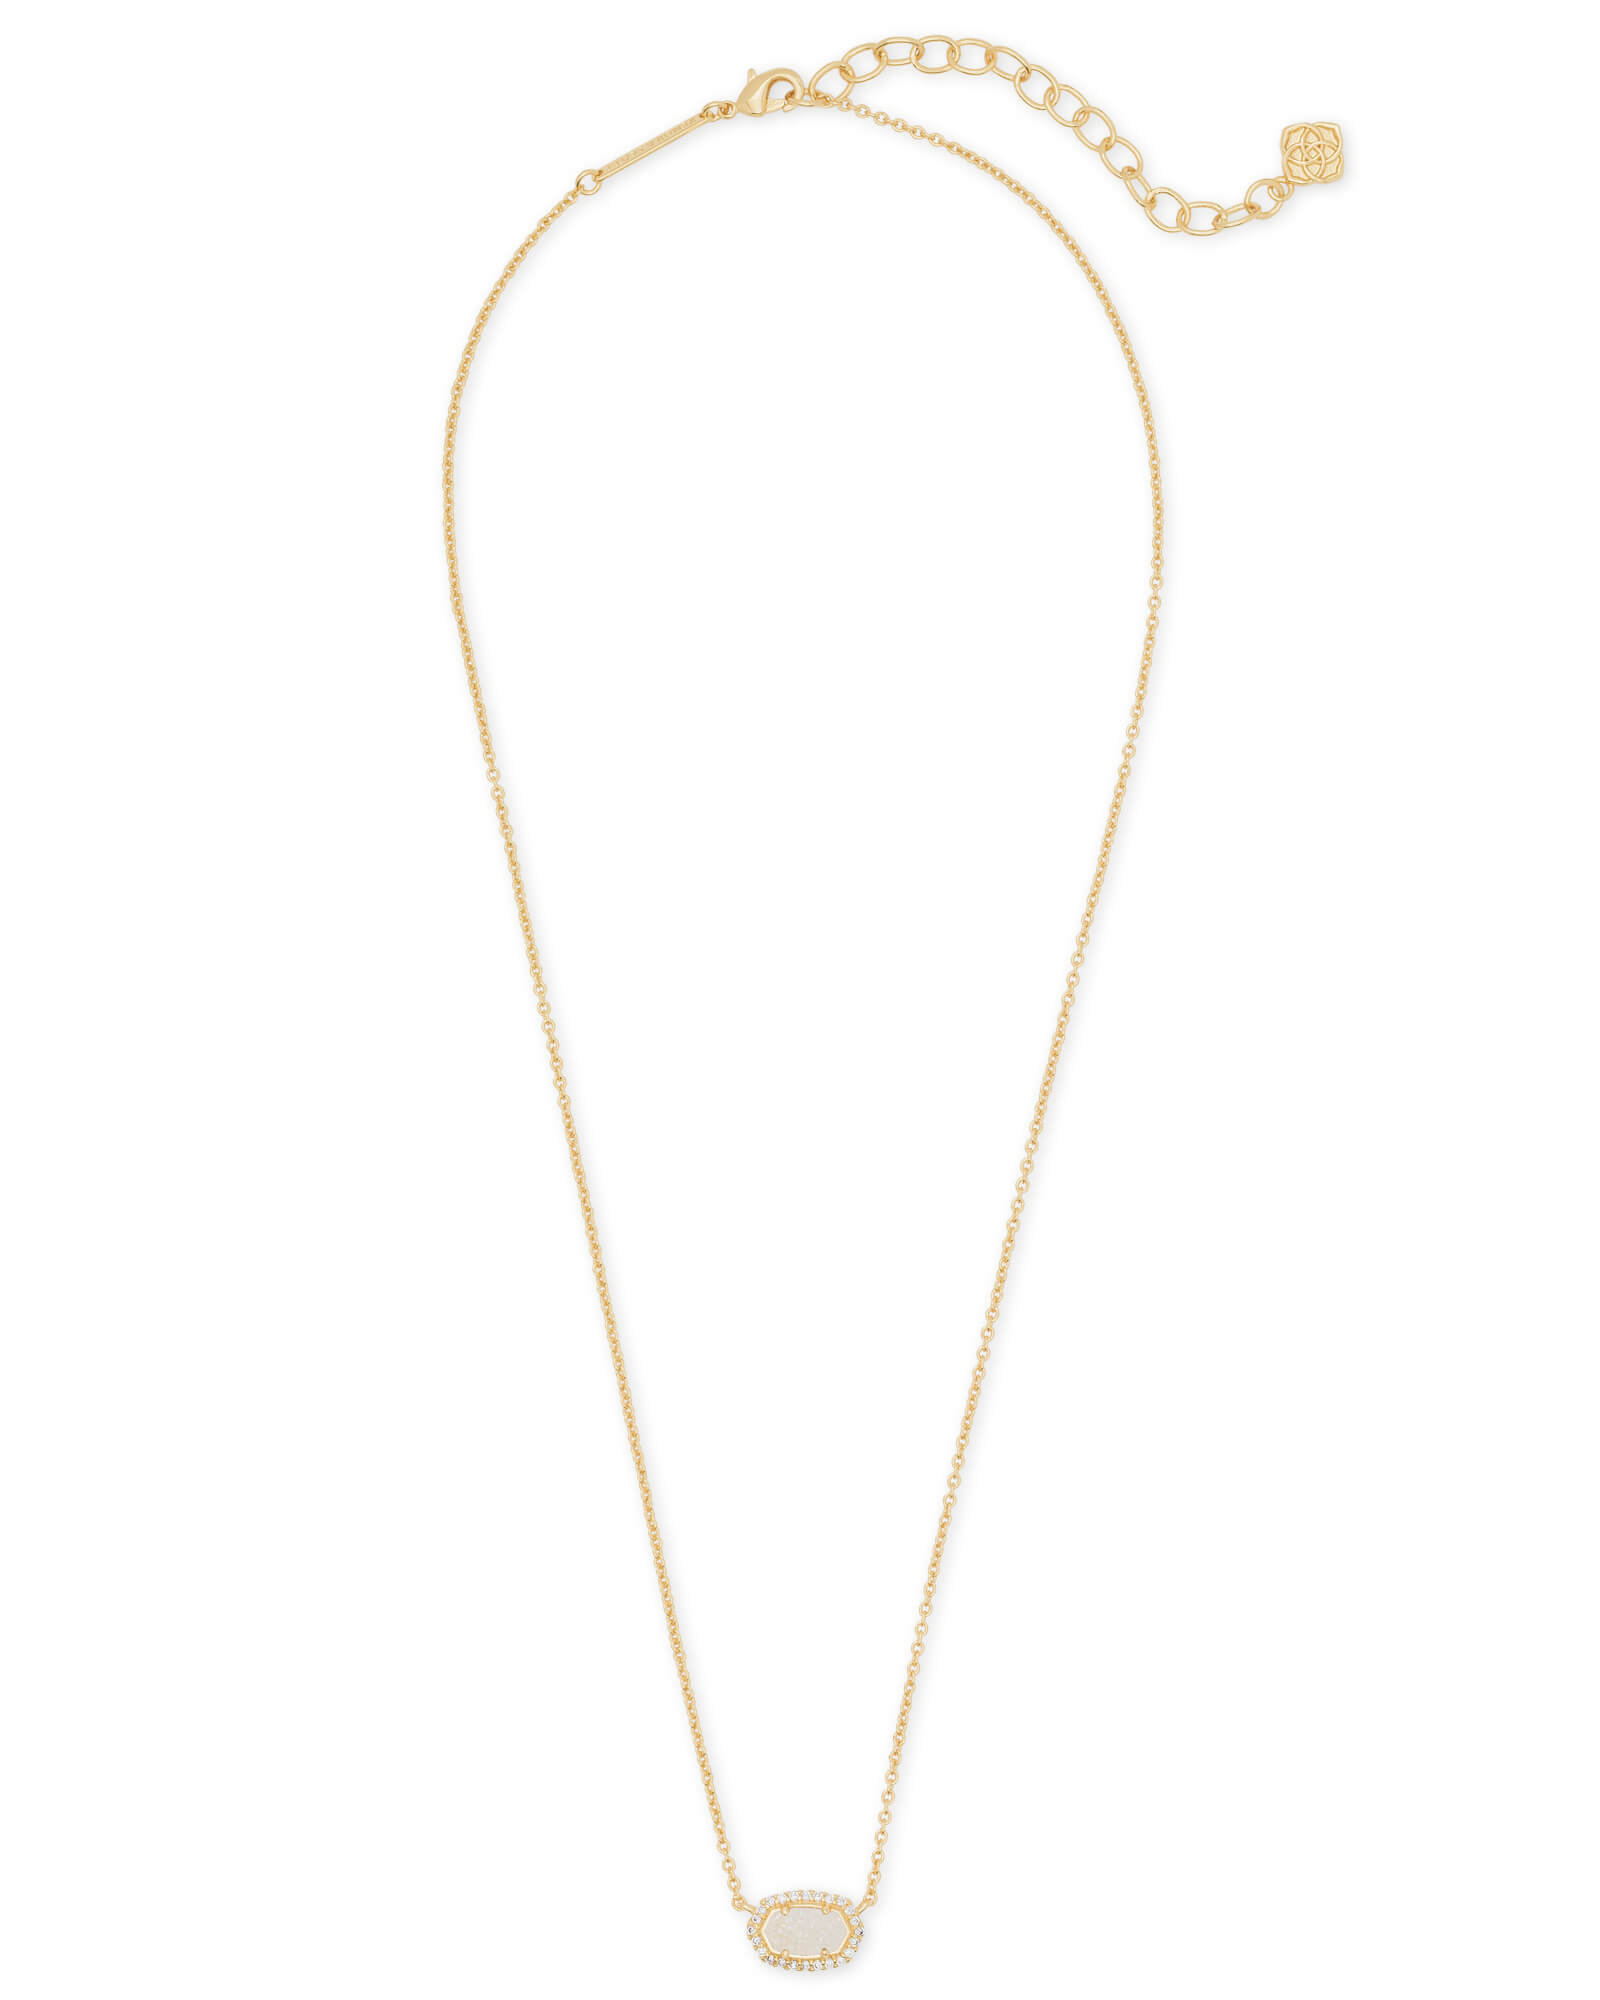 Chelsea Gold Pendant Necklace In Iridescent Drusy | Kendra Scott With Most Popular Square Sparkle Halo Pendant Necklaces (Gallery 25 of 25)